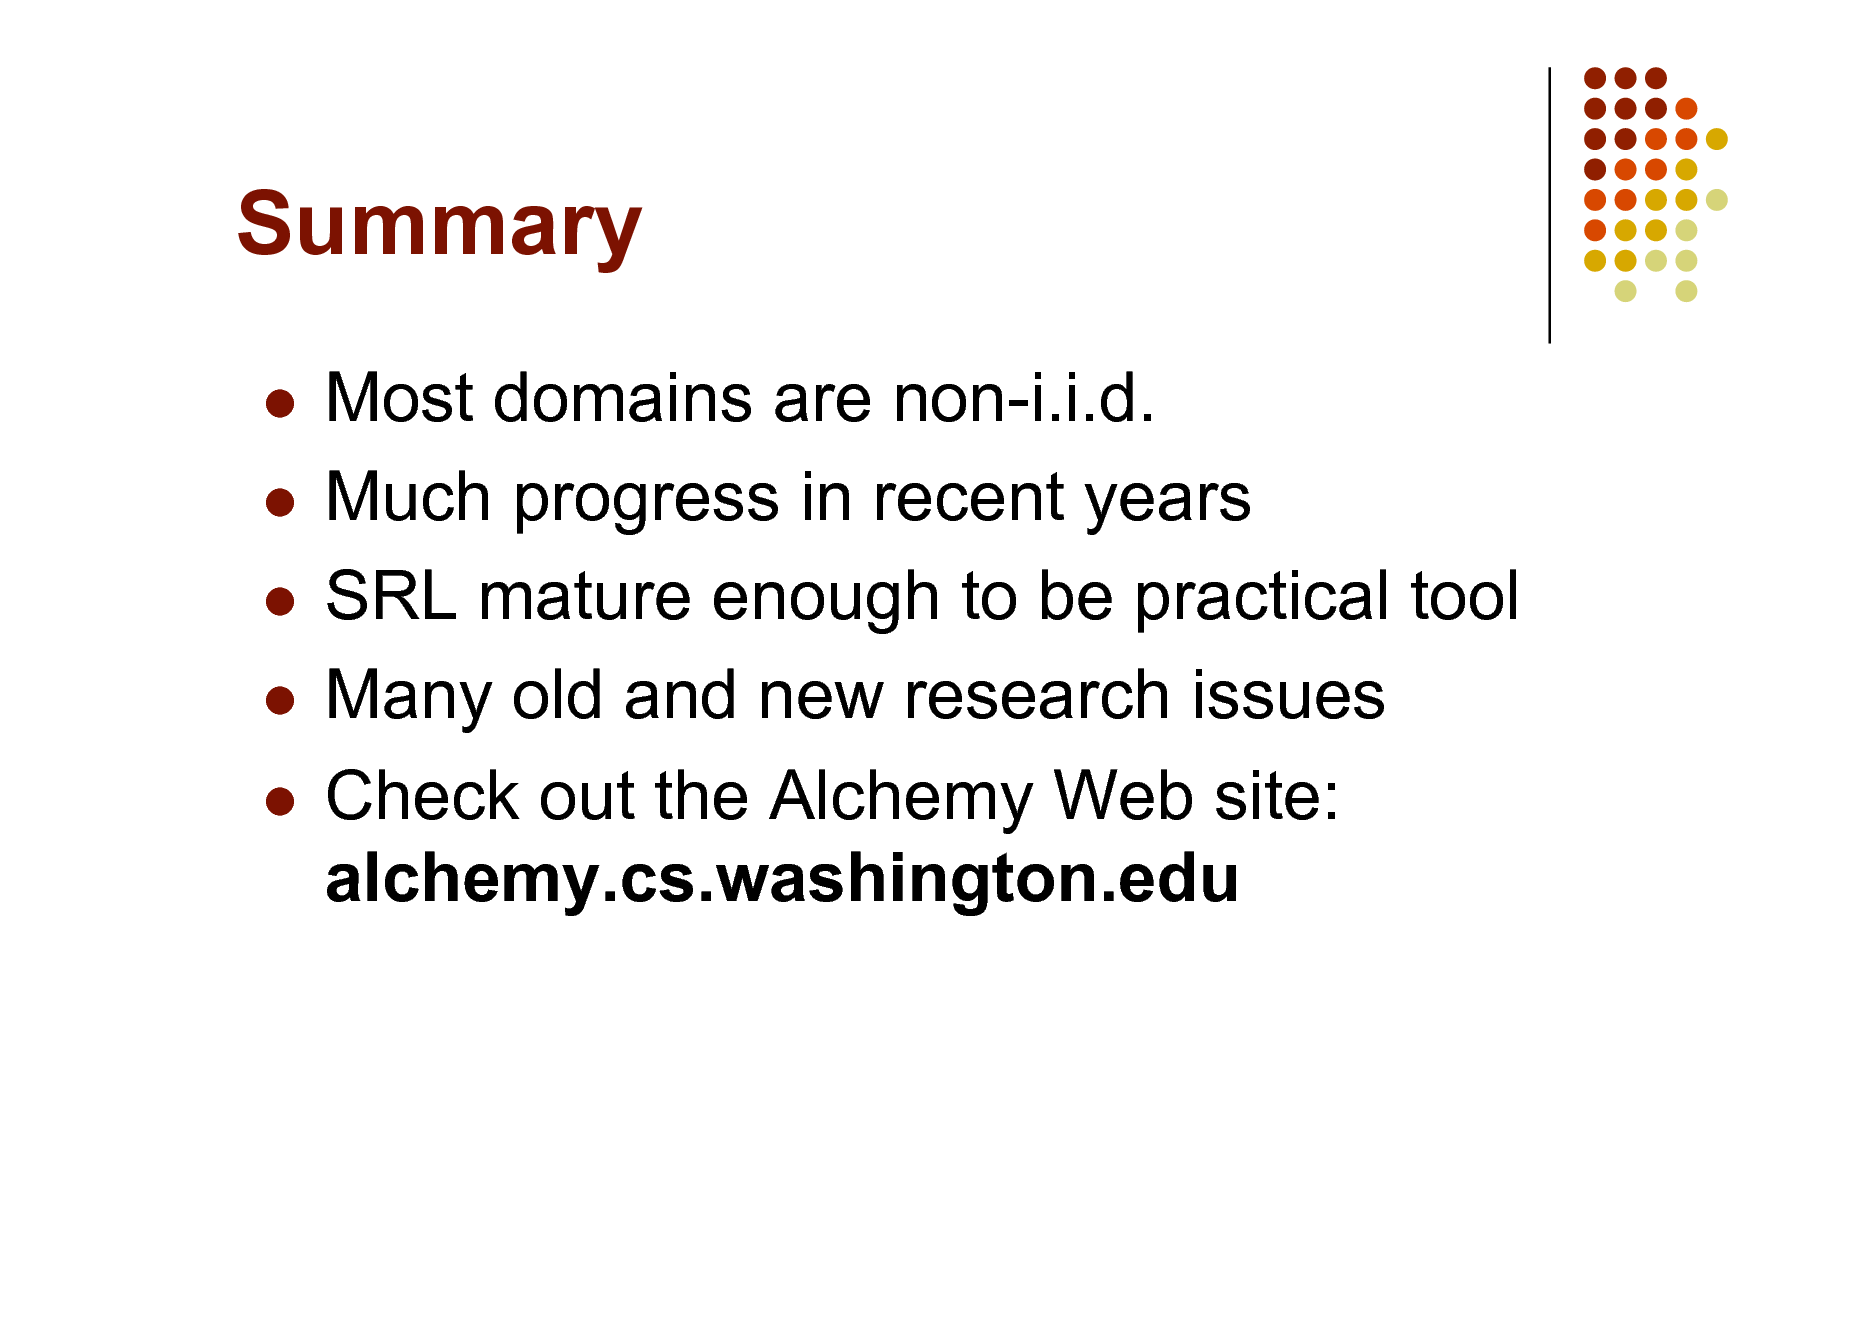 Slide: Summary Most domains are non-i.i.d.  Much progress in recent years  SRL mature enough to be practical tool  Many old and new research issues  Check out the Alchemy Web site: alchemy.cs.washington.edu